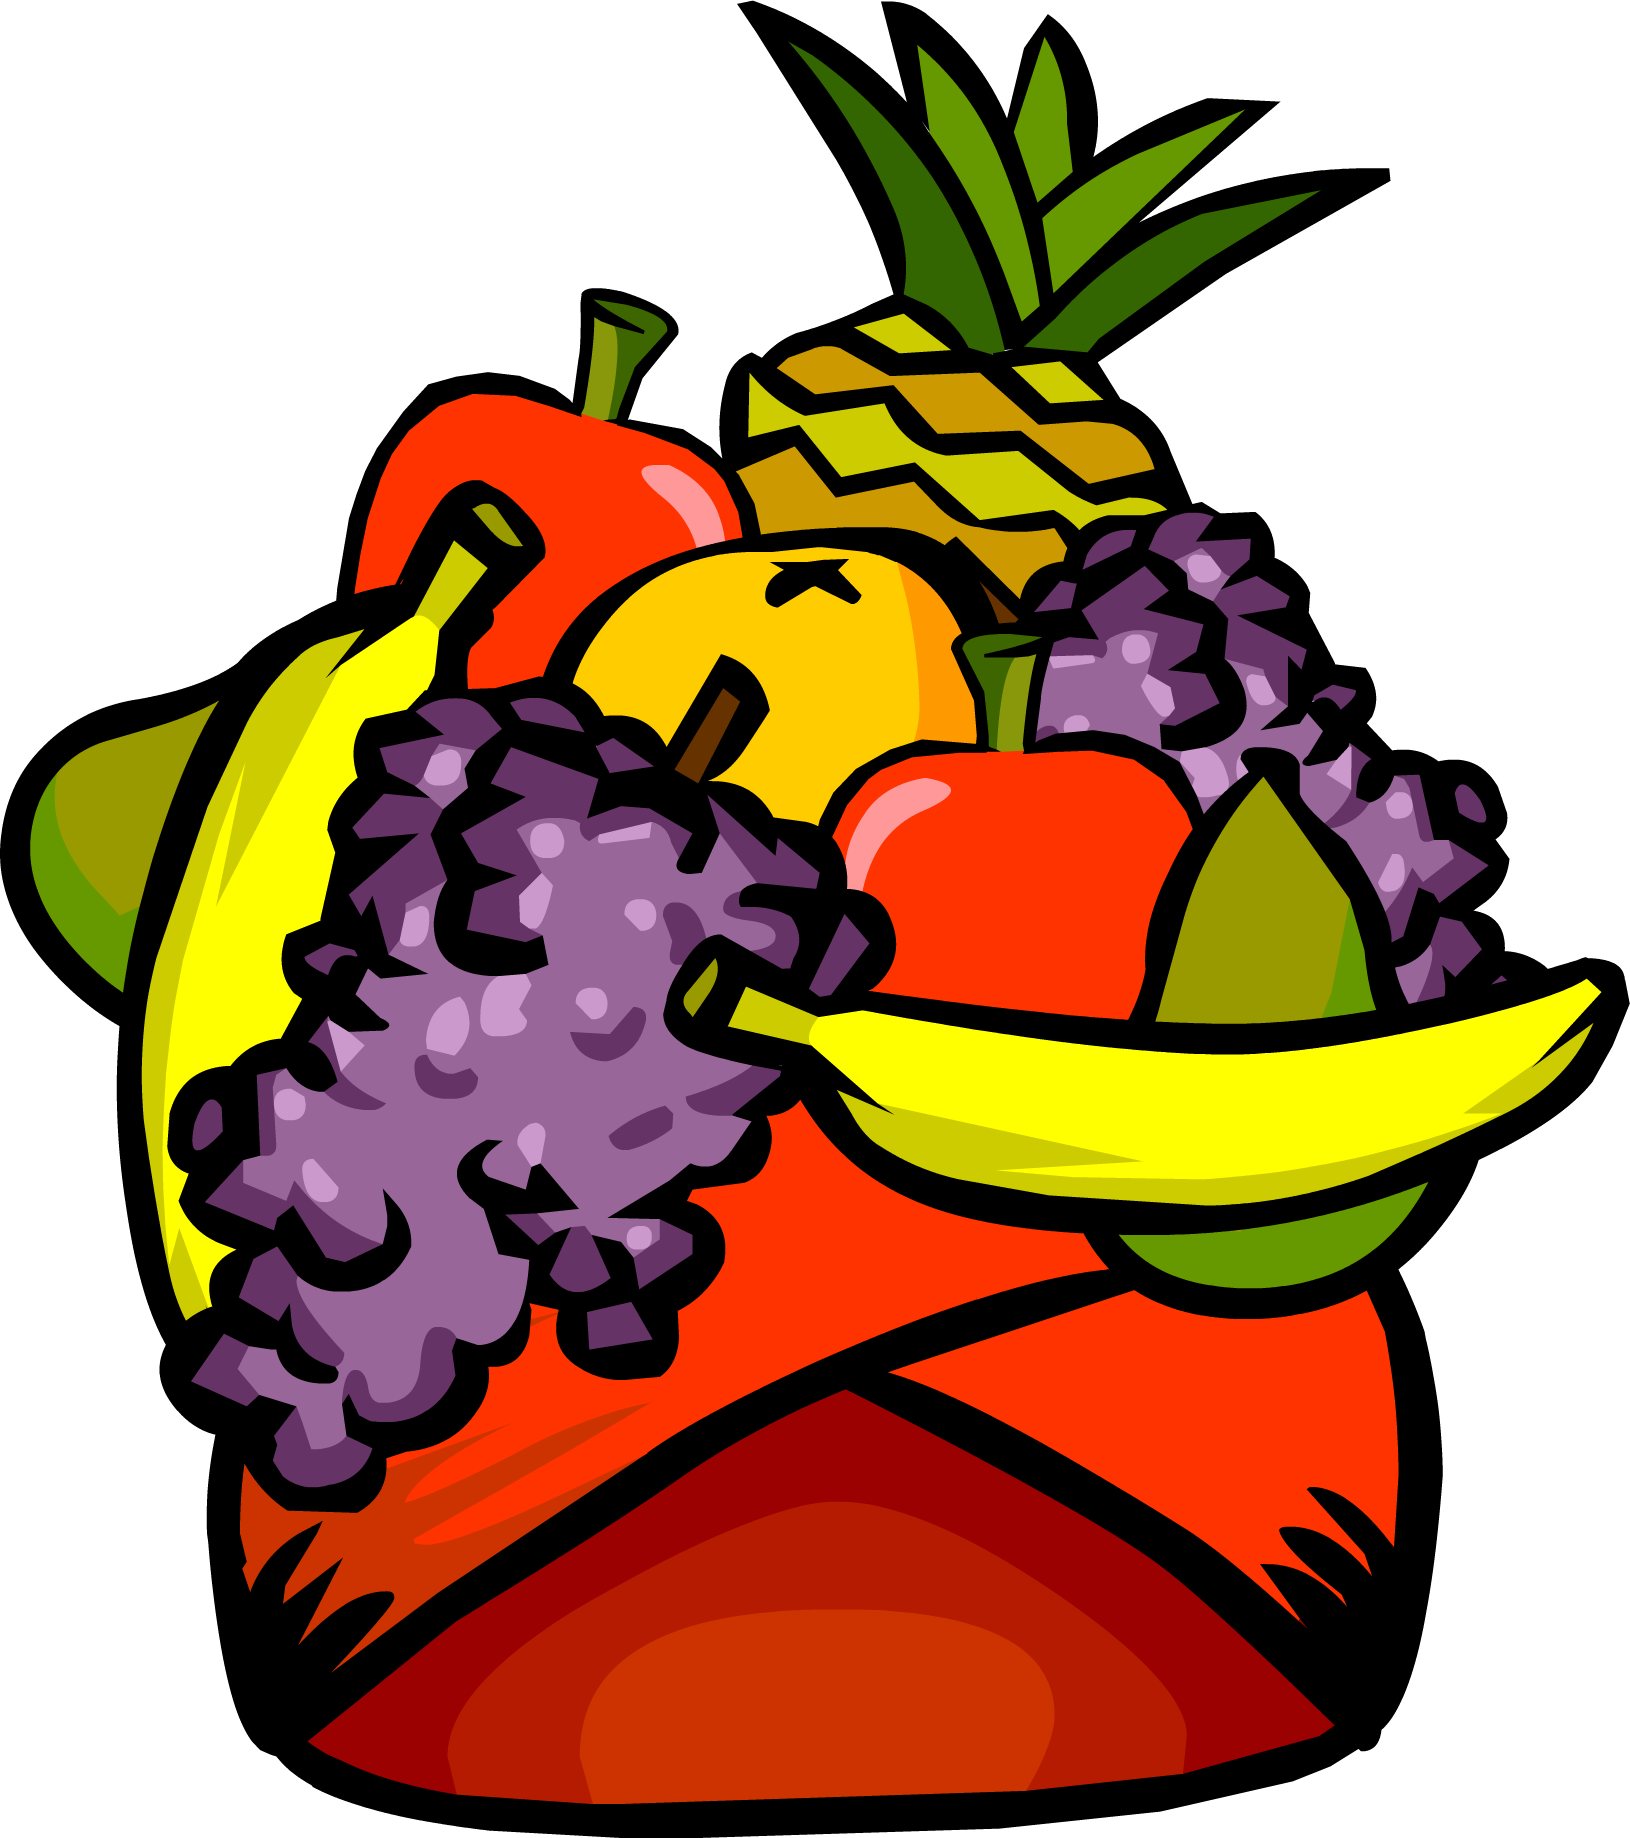 royalty free Fruit Headdress